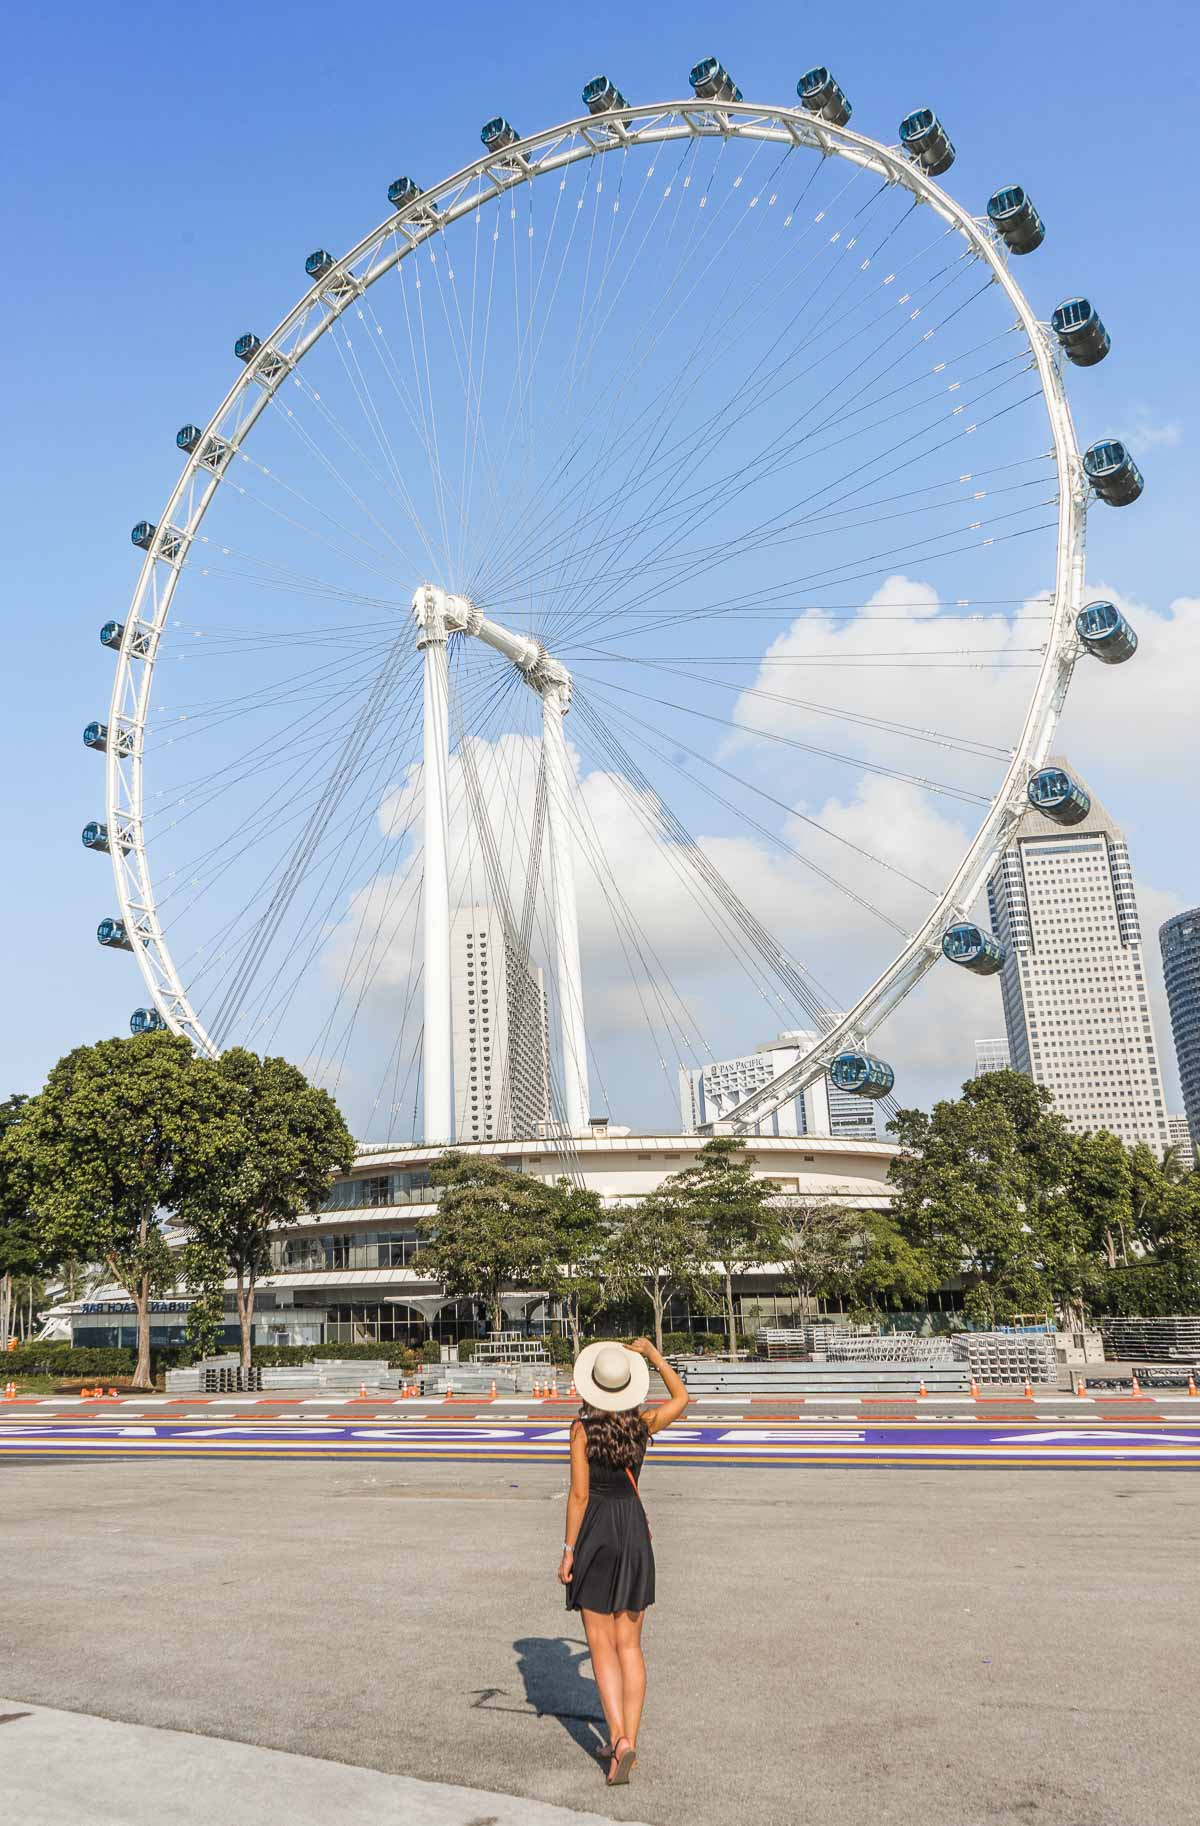 Girl in a black dress standing in front of the Singapore Flyer in Singapore